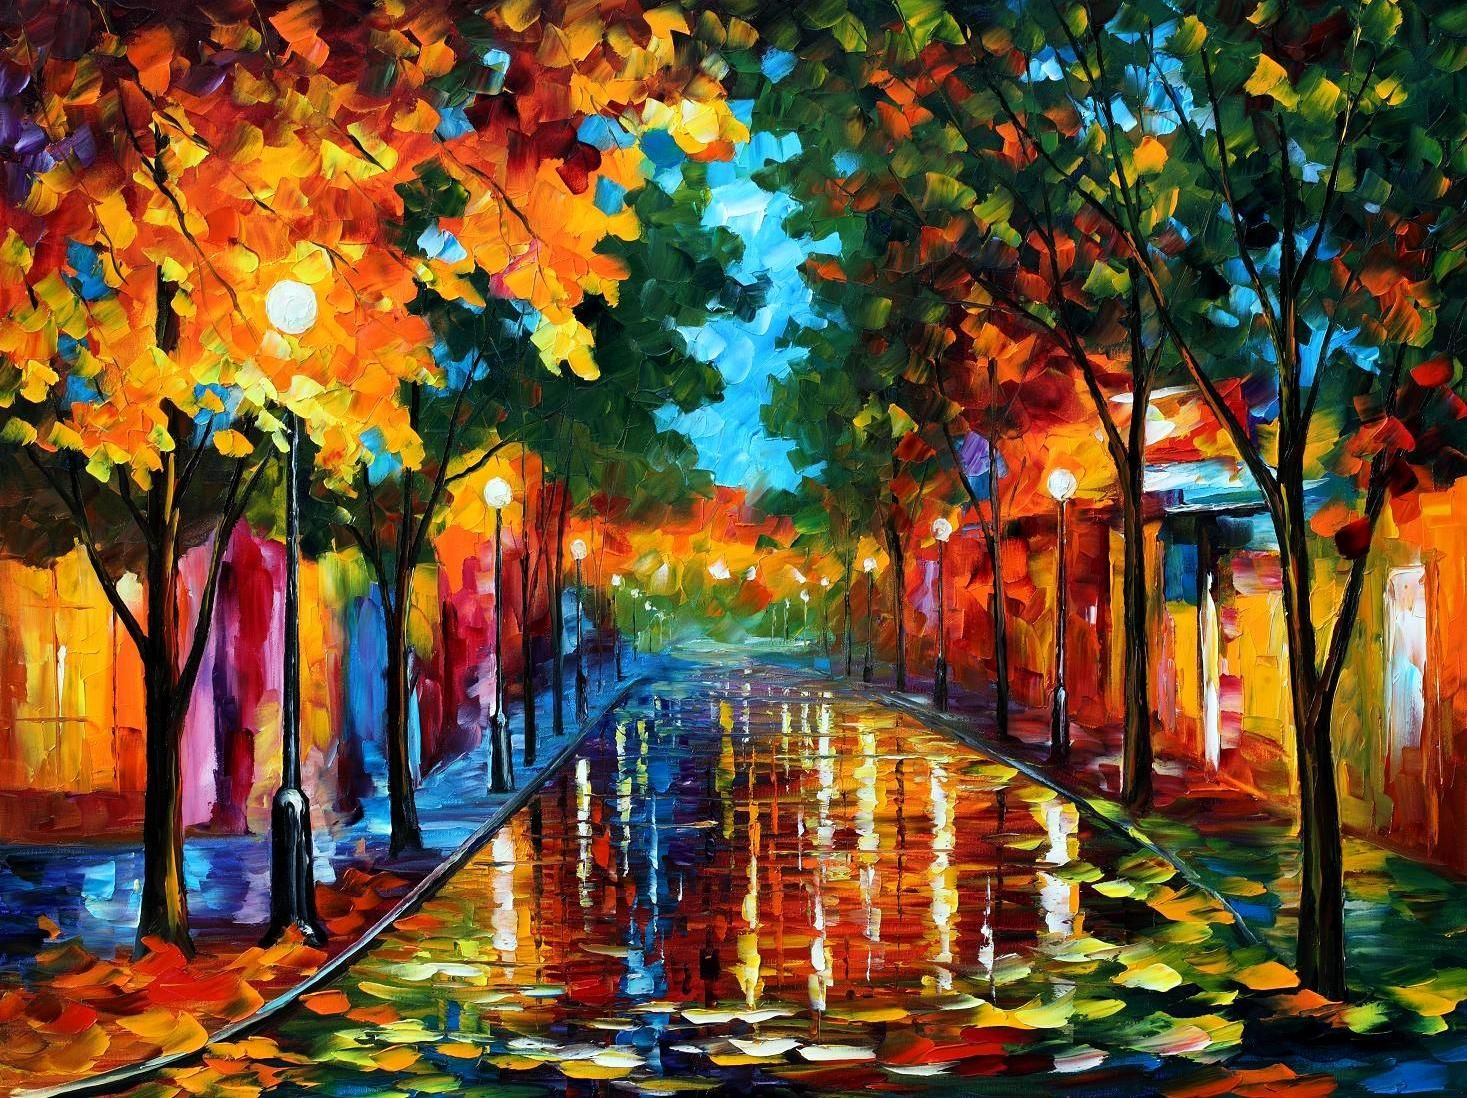 FALLEN LEAFS  PALETTE KNIFE Oil Painting On Canvas By Leonid Afremov -  Size 30